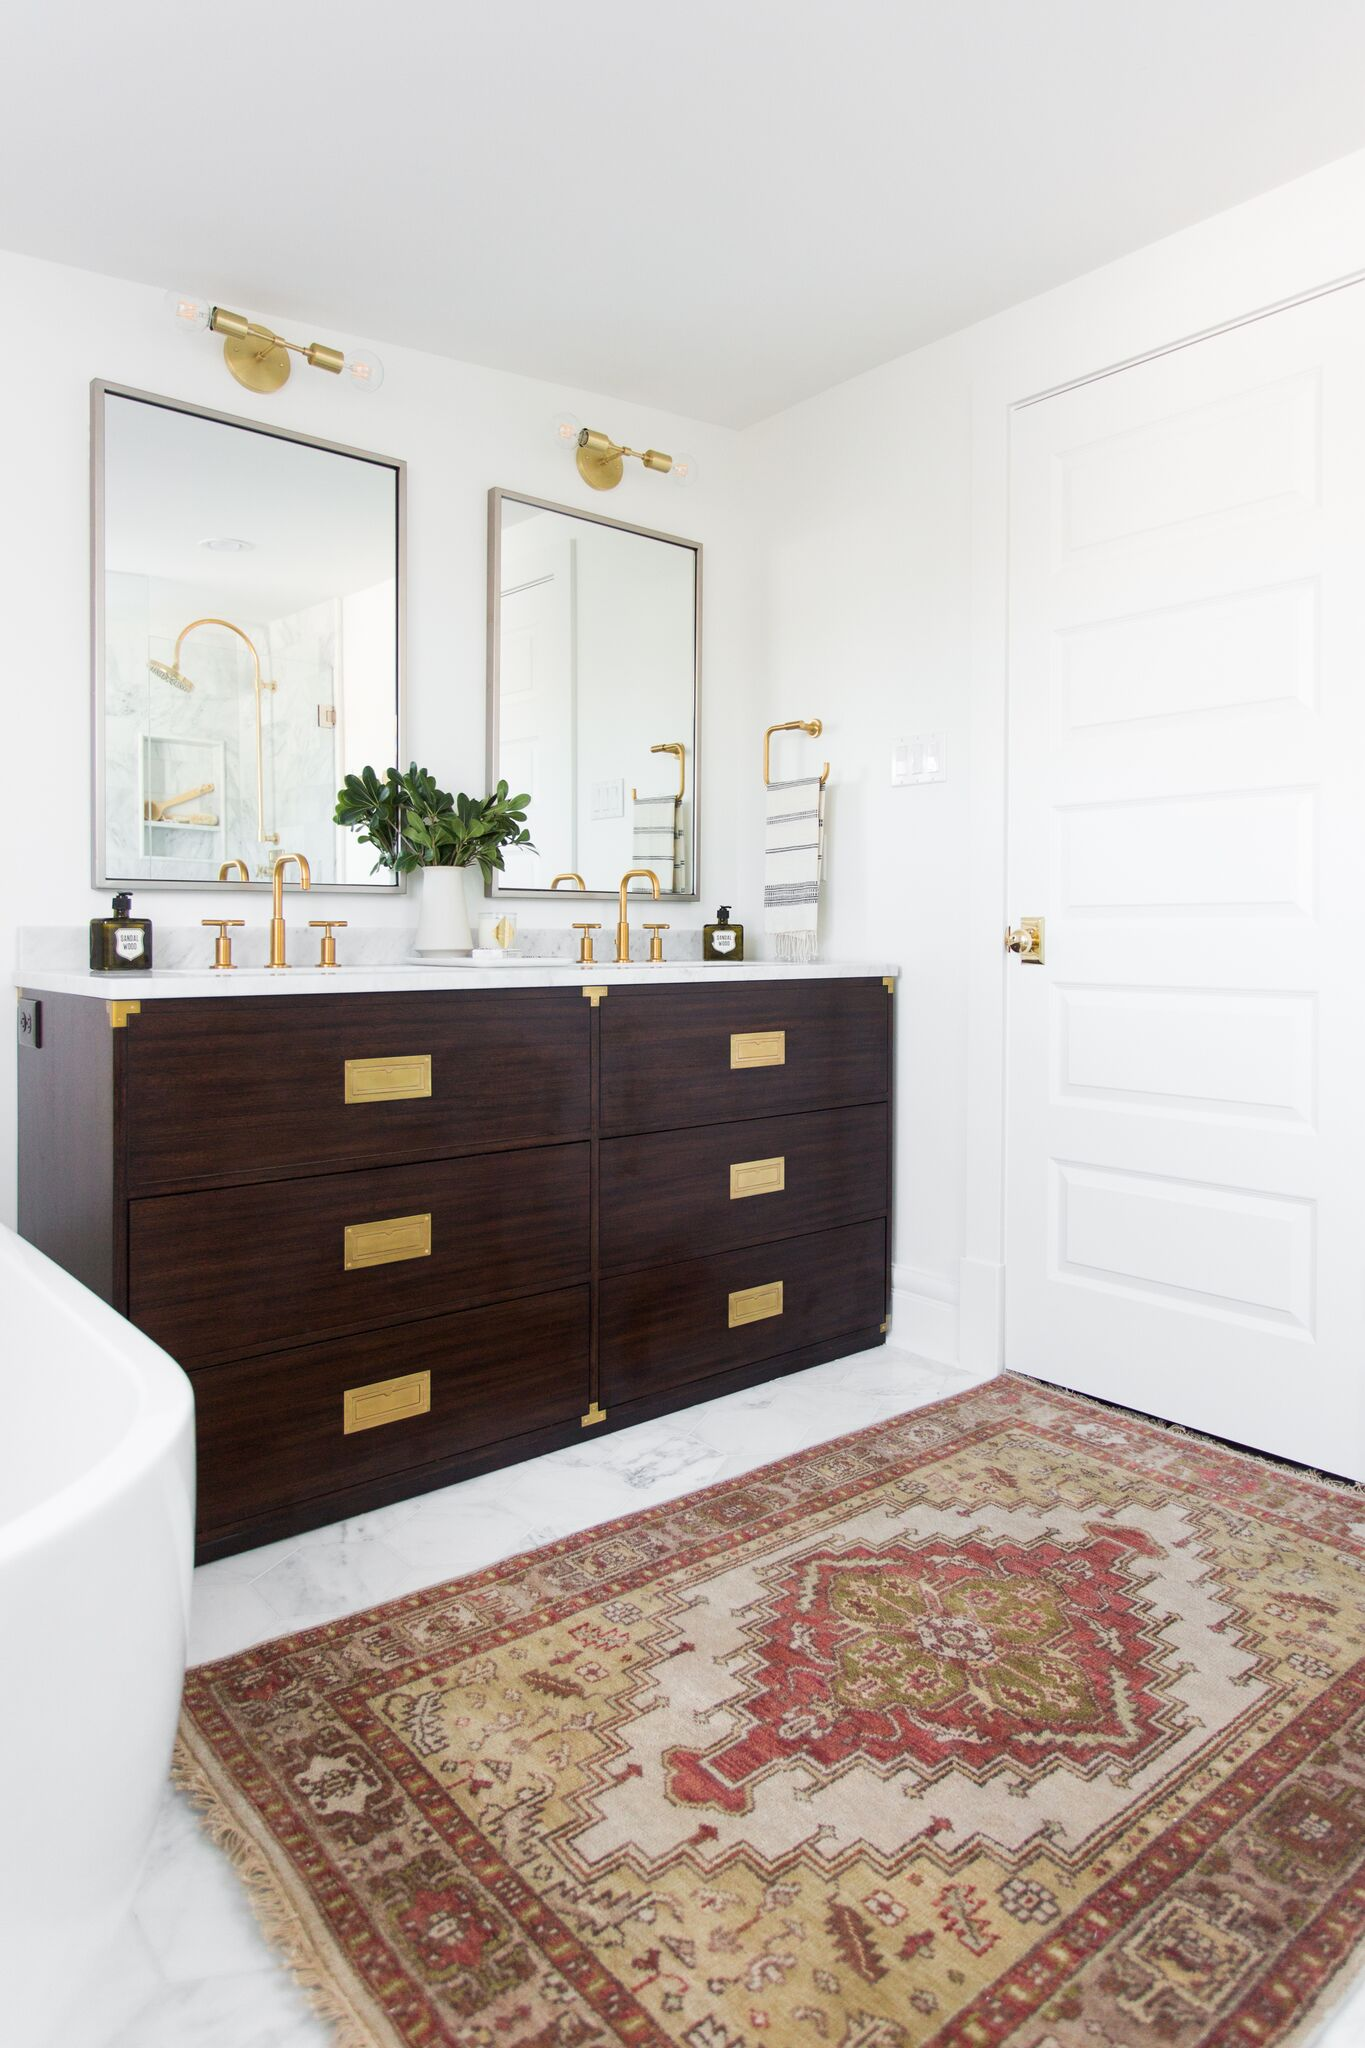 Pattern details on area rug in bathroom